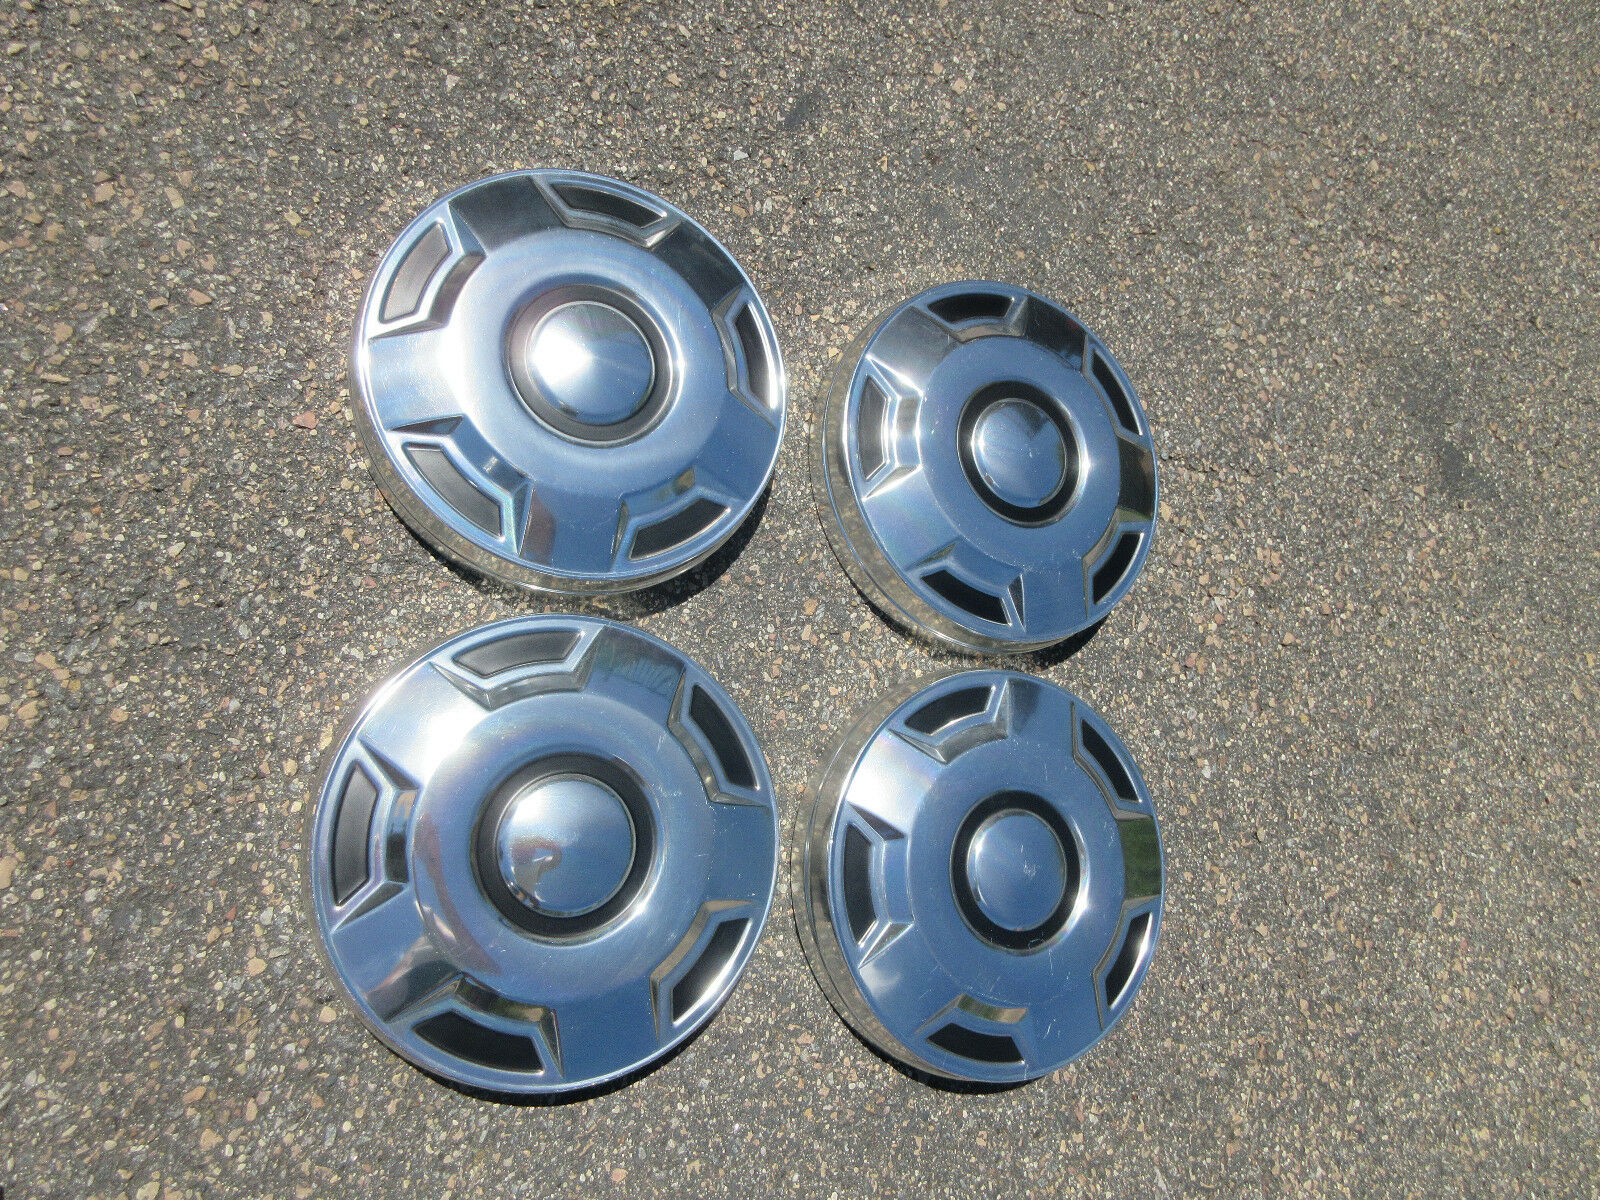 1978-1991 Ford Truck Van 10.75 Inch Dog Dish Hubcaps